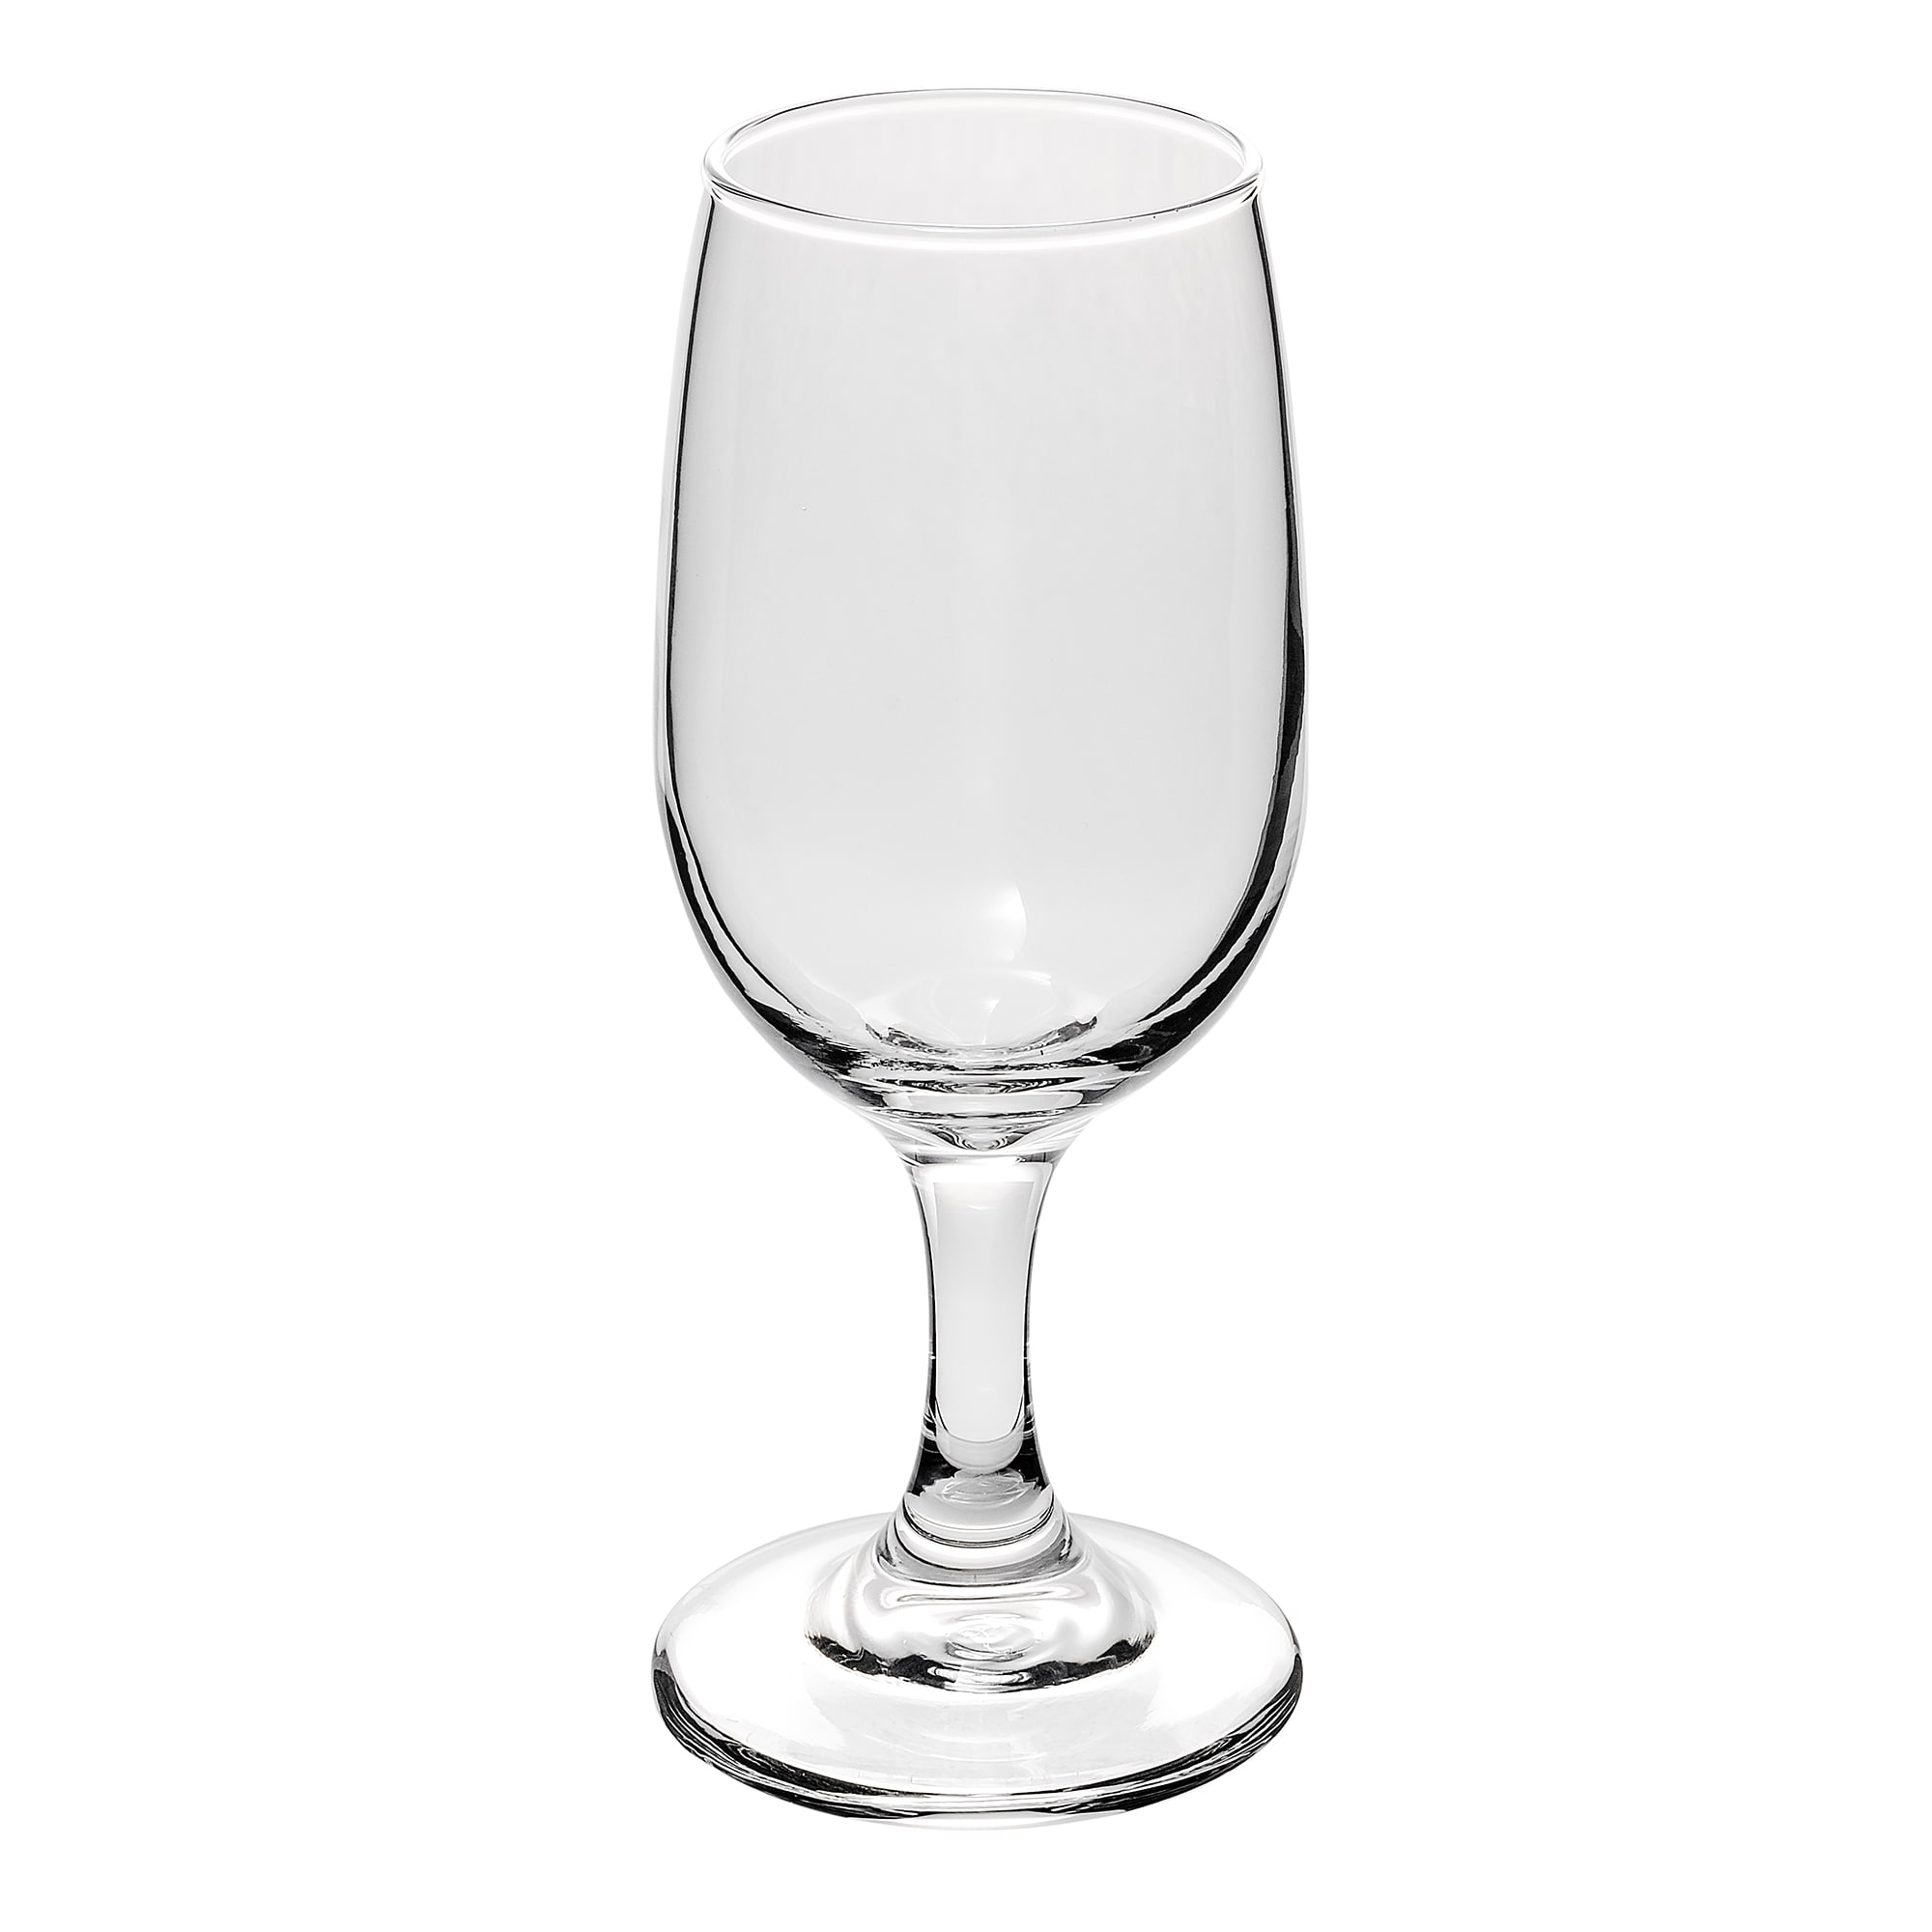 Libbey 3766 6.5 oz Embassy Wine Glass - Safedge Rim & Foot Guarantee